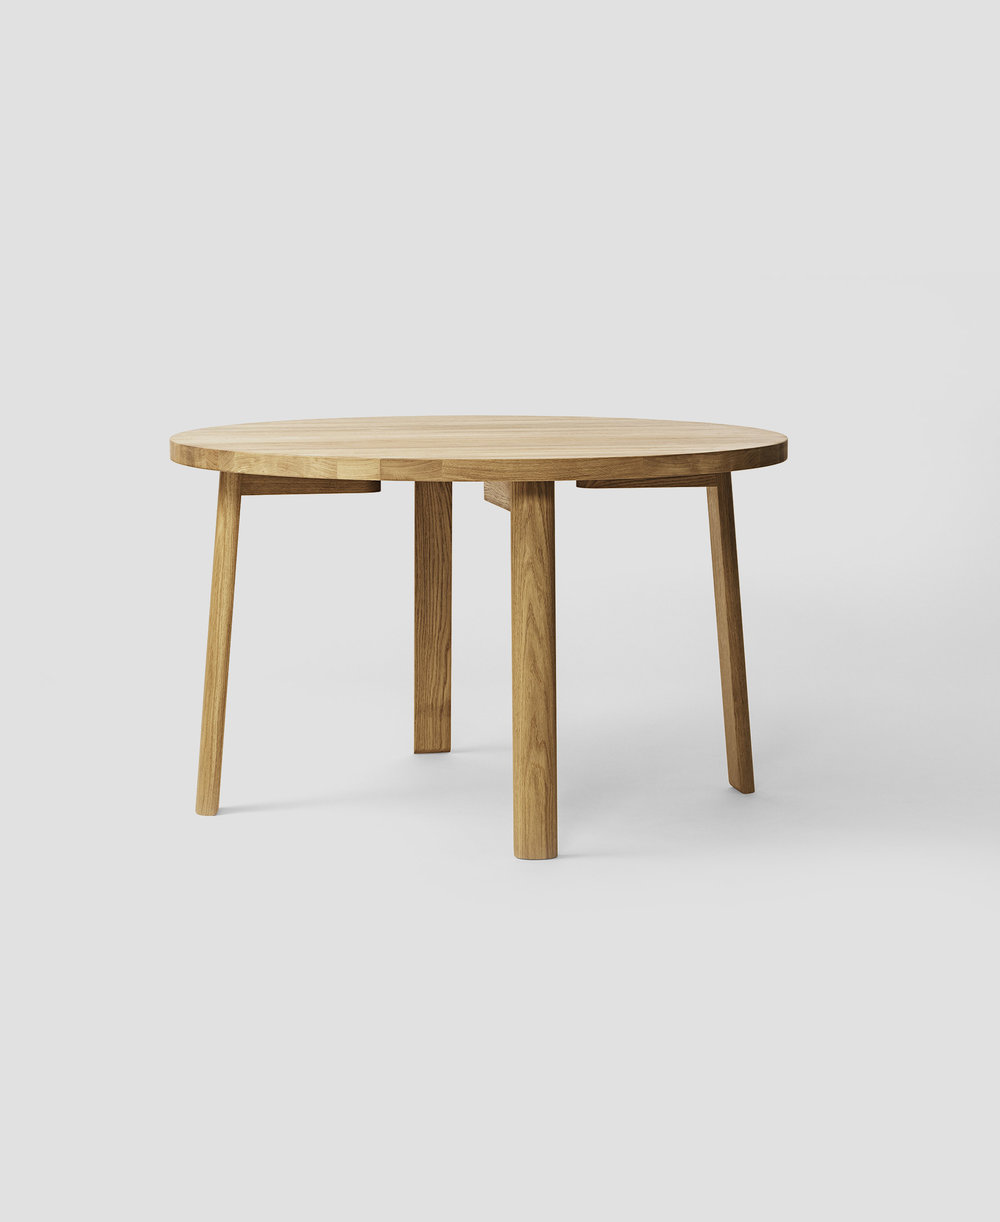 Ease Table Range designed by Terkel Skou Steffensen for Million